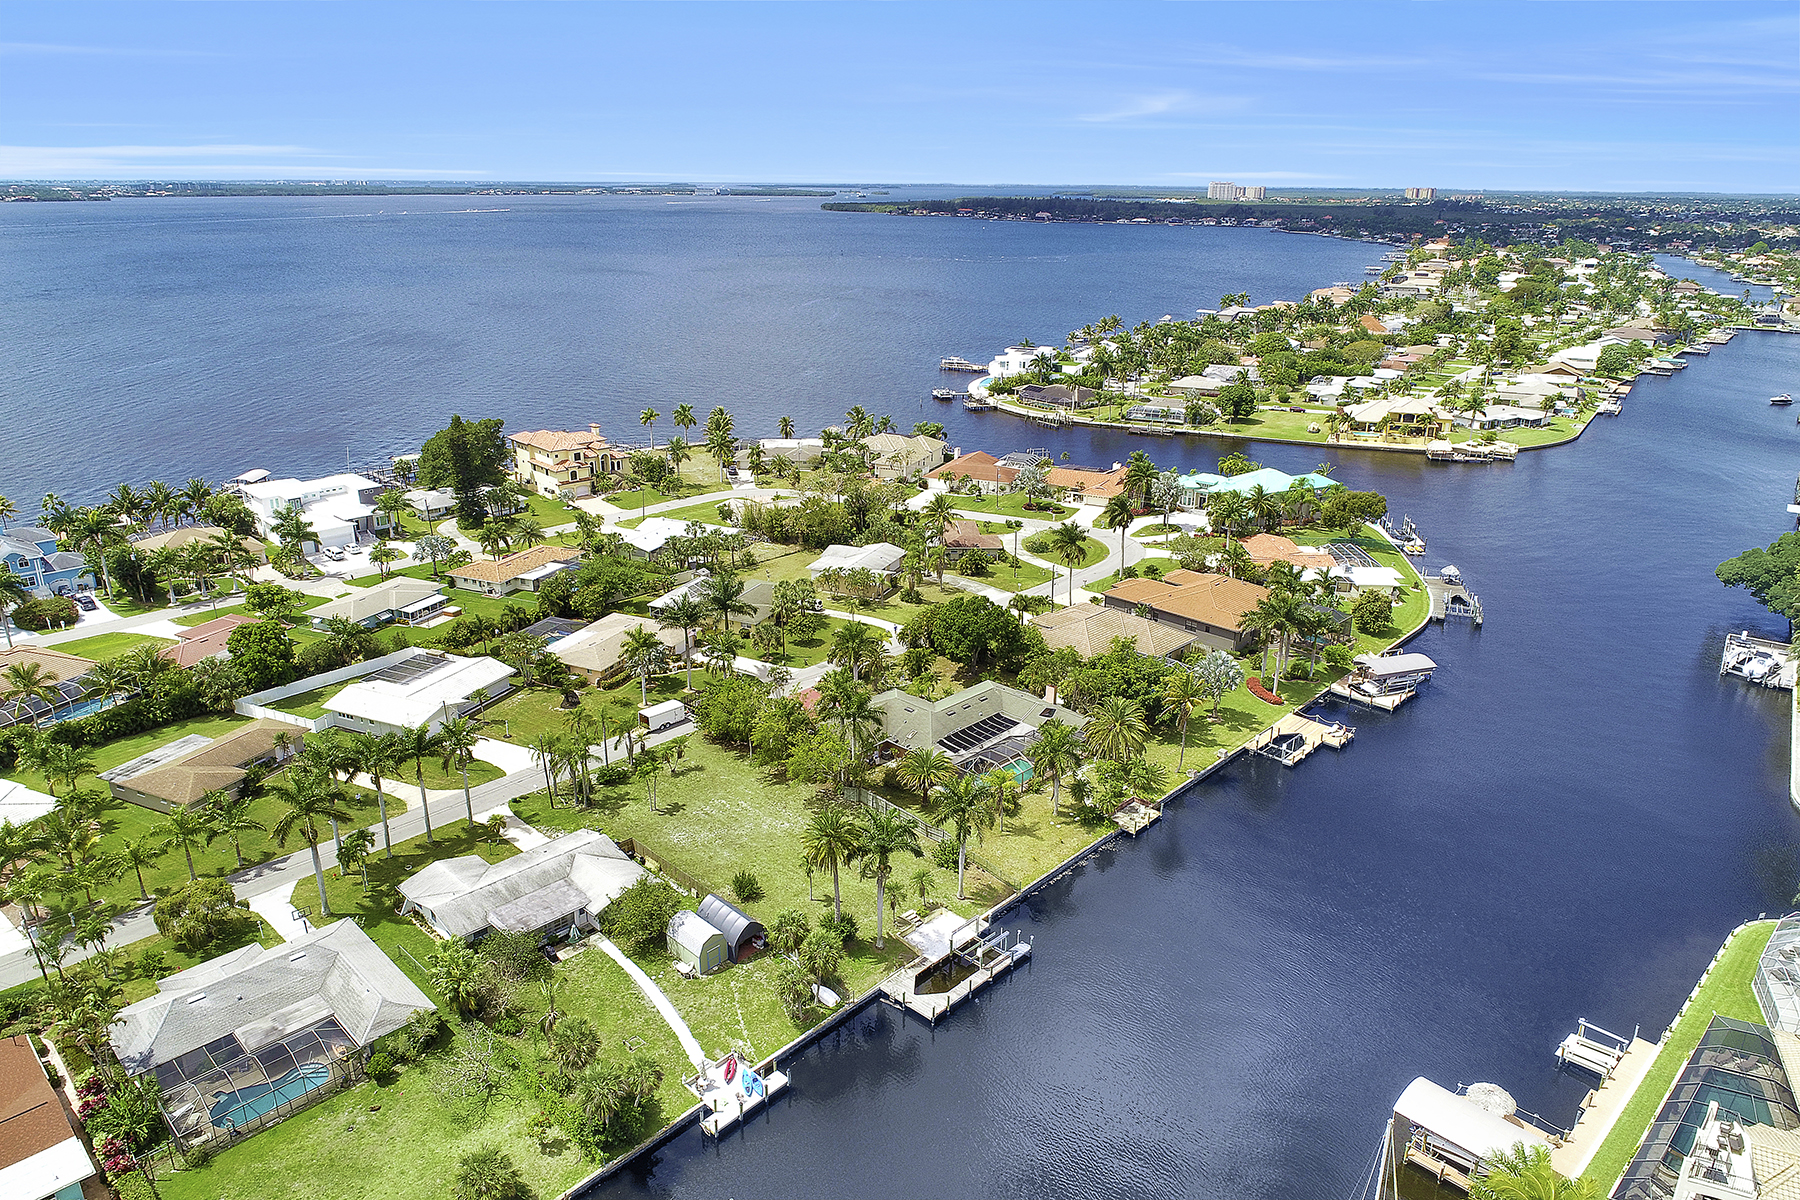 Land for Sale at CAPE CORAL 931 Dolphin Drive, Cape Coral, Florida 33904 United States